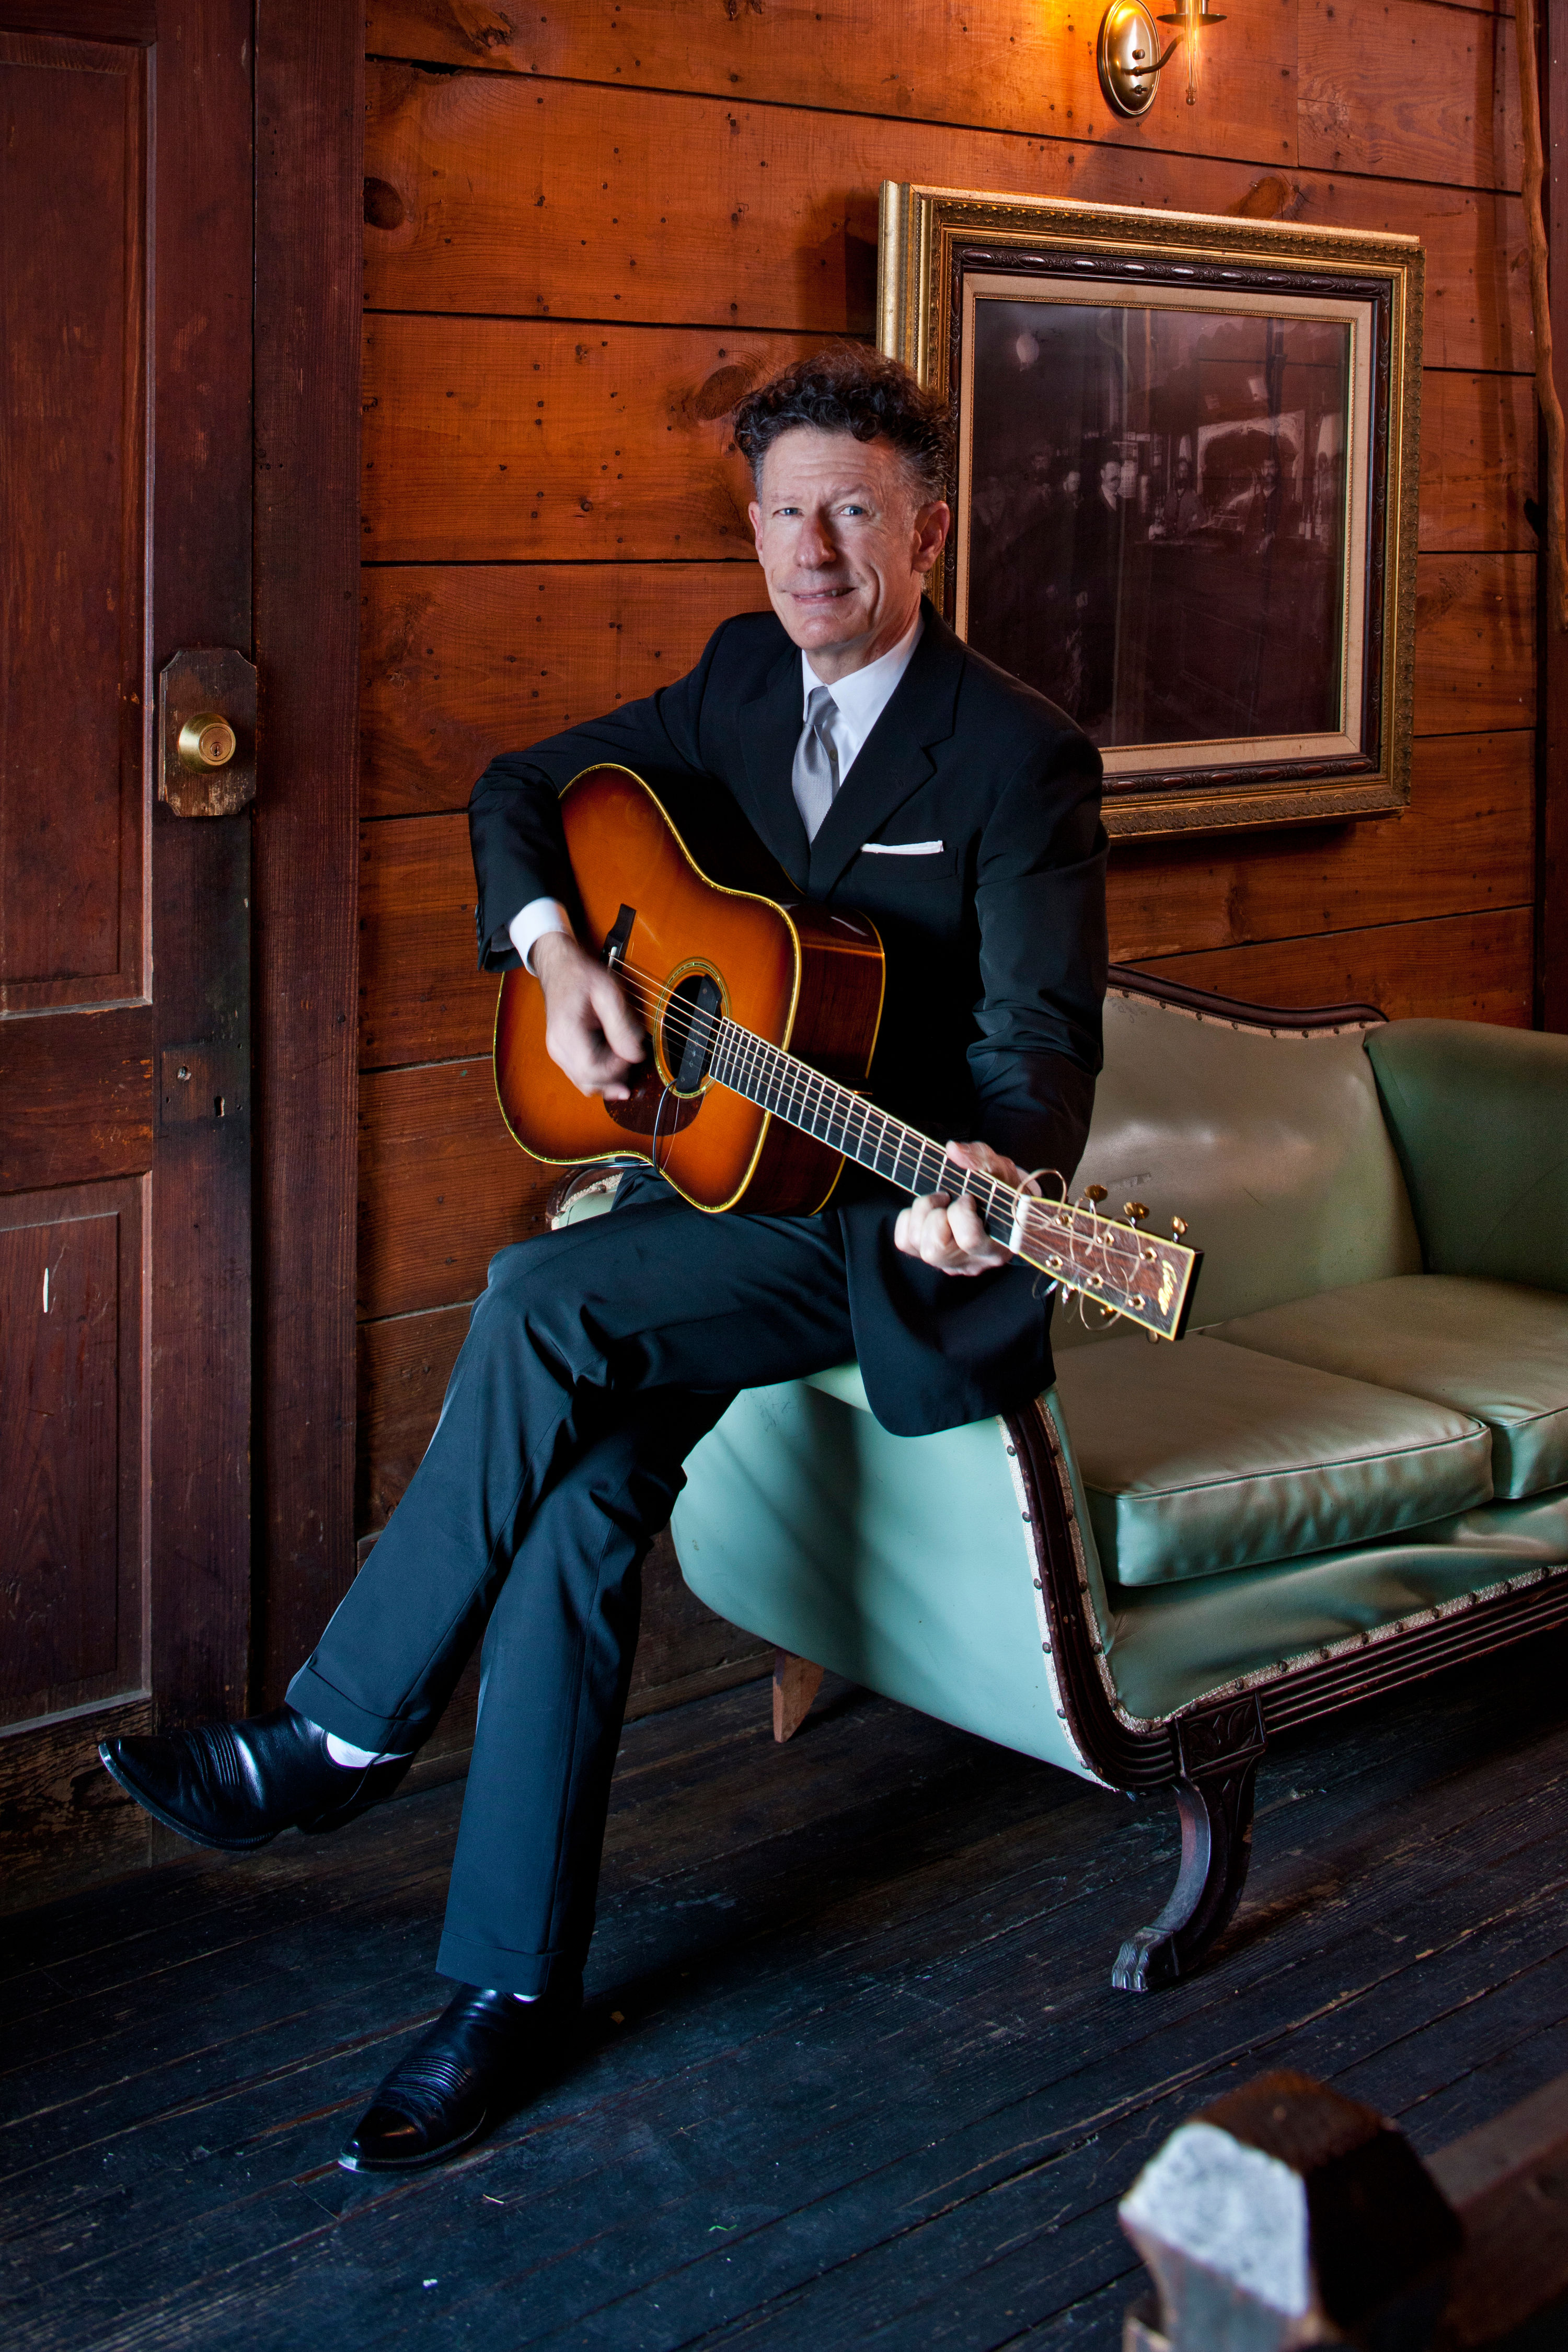 Paper Napkin Interview: Dishing with Lyle Lovett